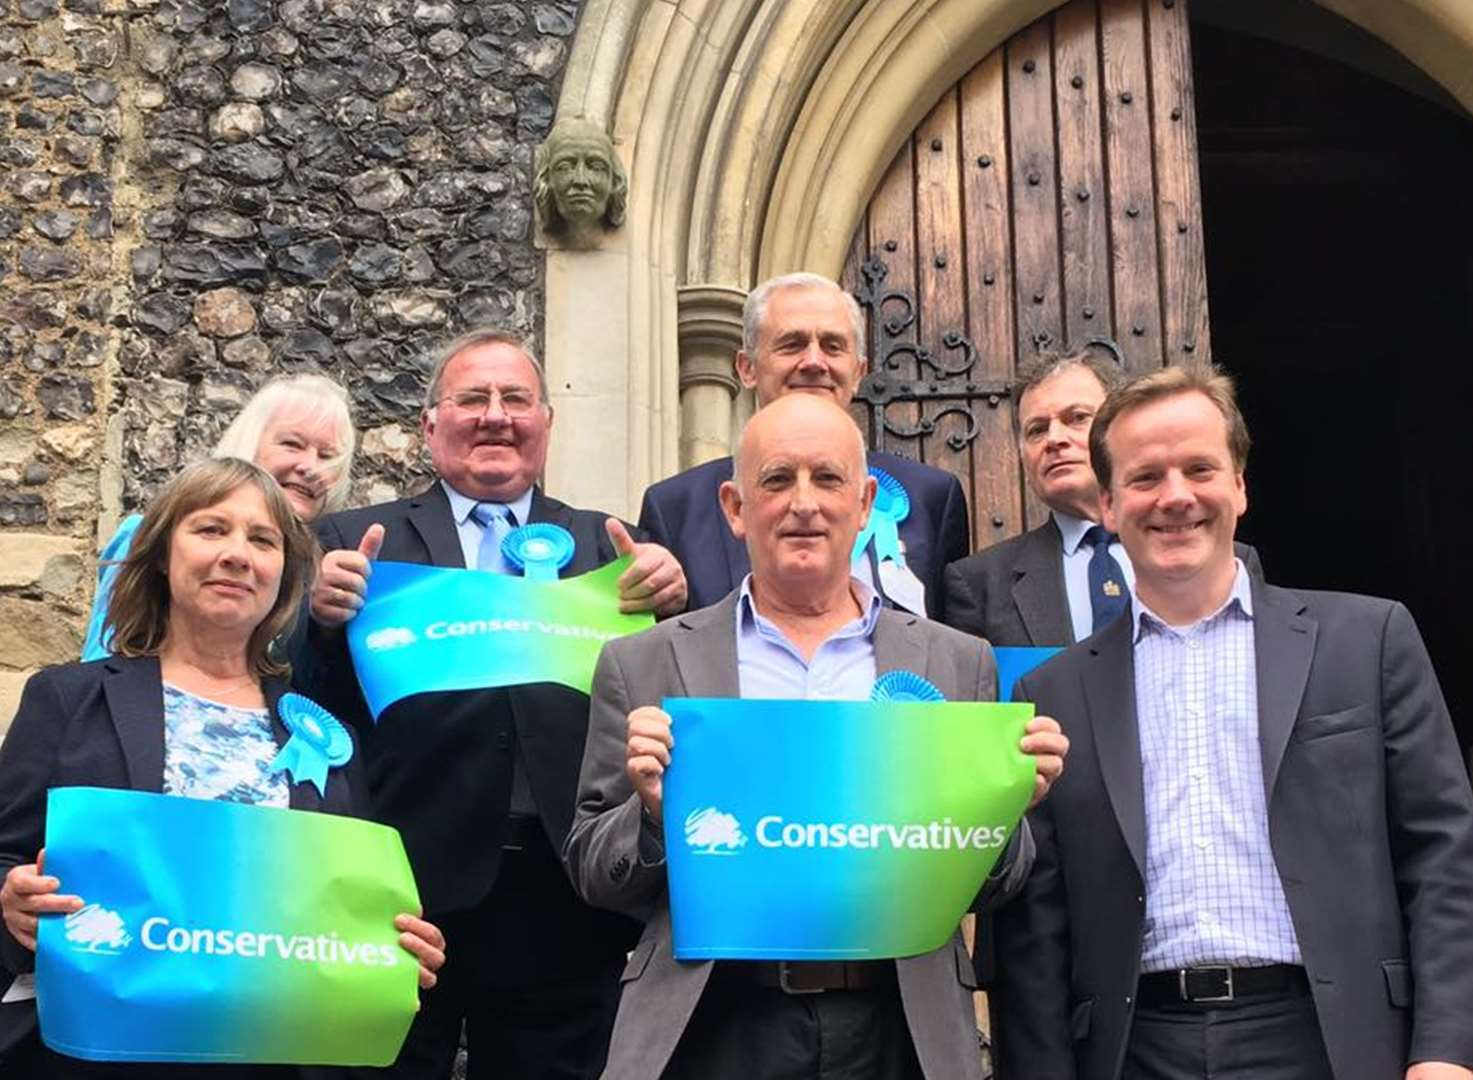 Clean sweep for Tories